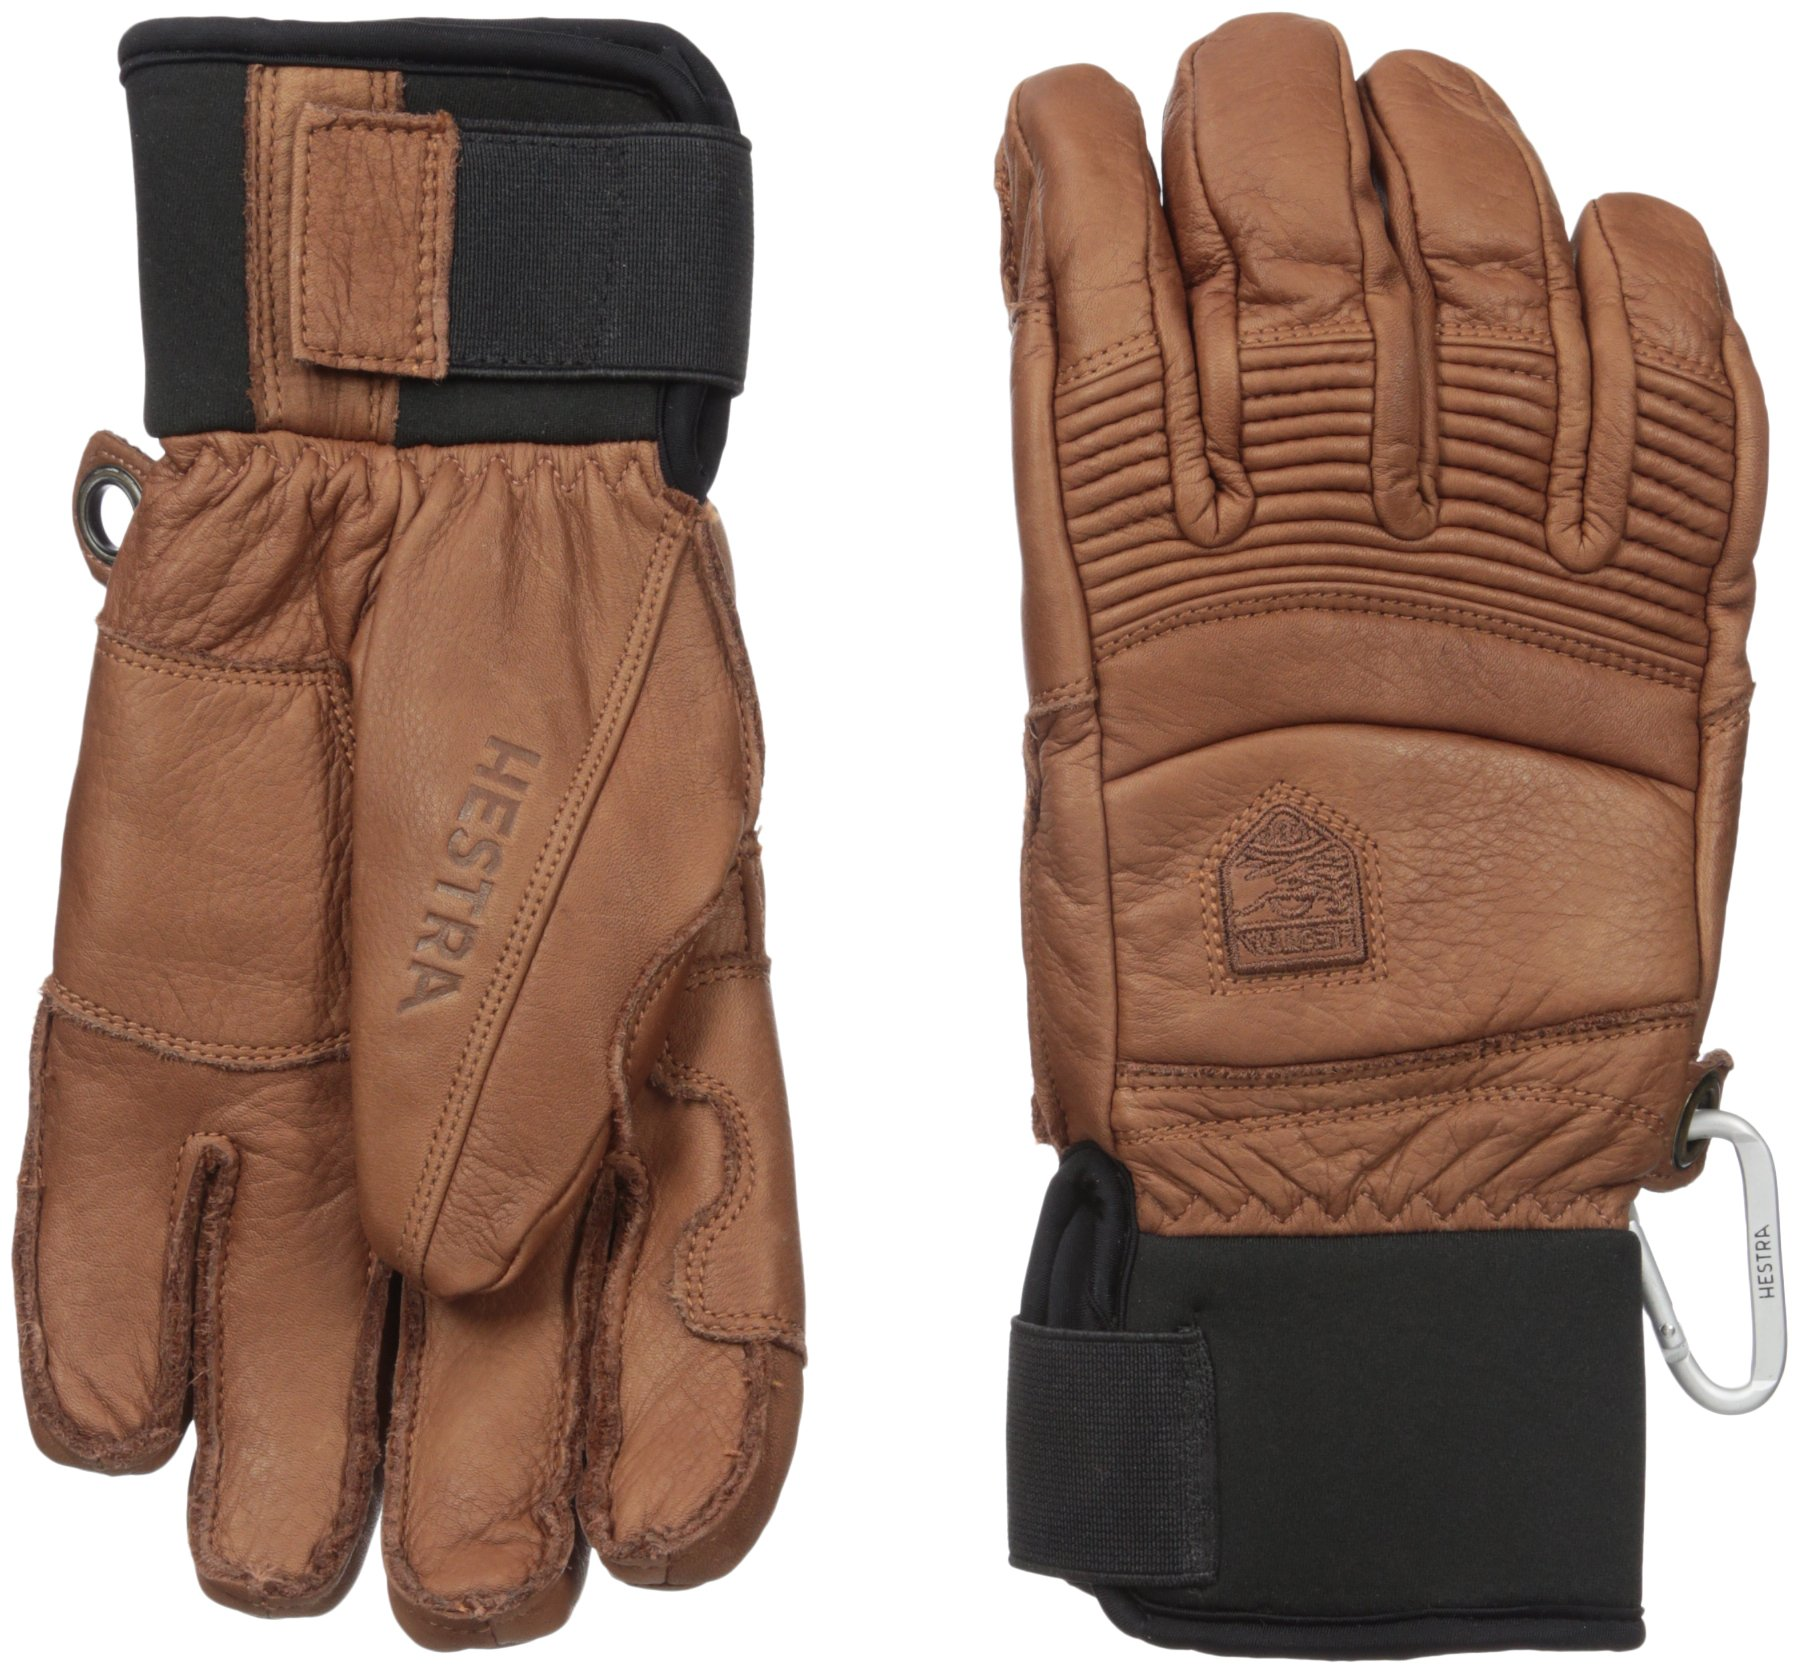 Hestra Fall Line Leather Short Ski, Ride and Park Glove,Brown,9 by Hestra